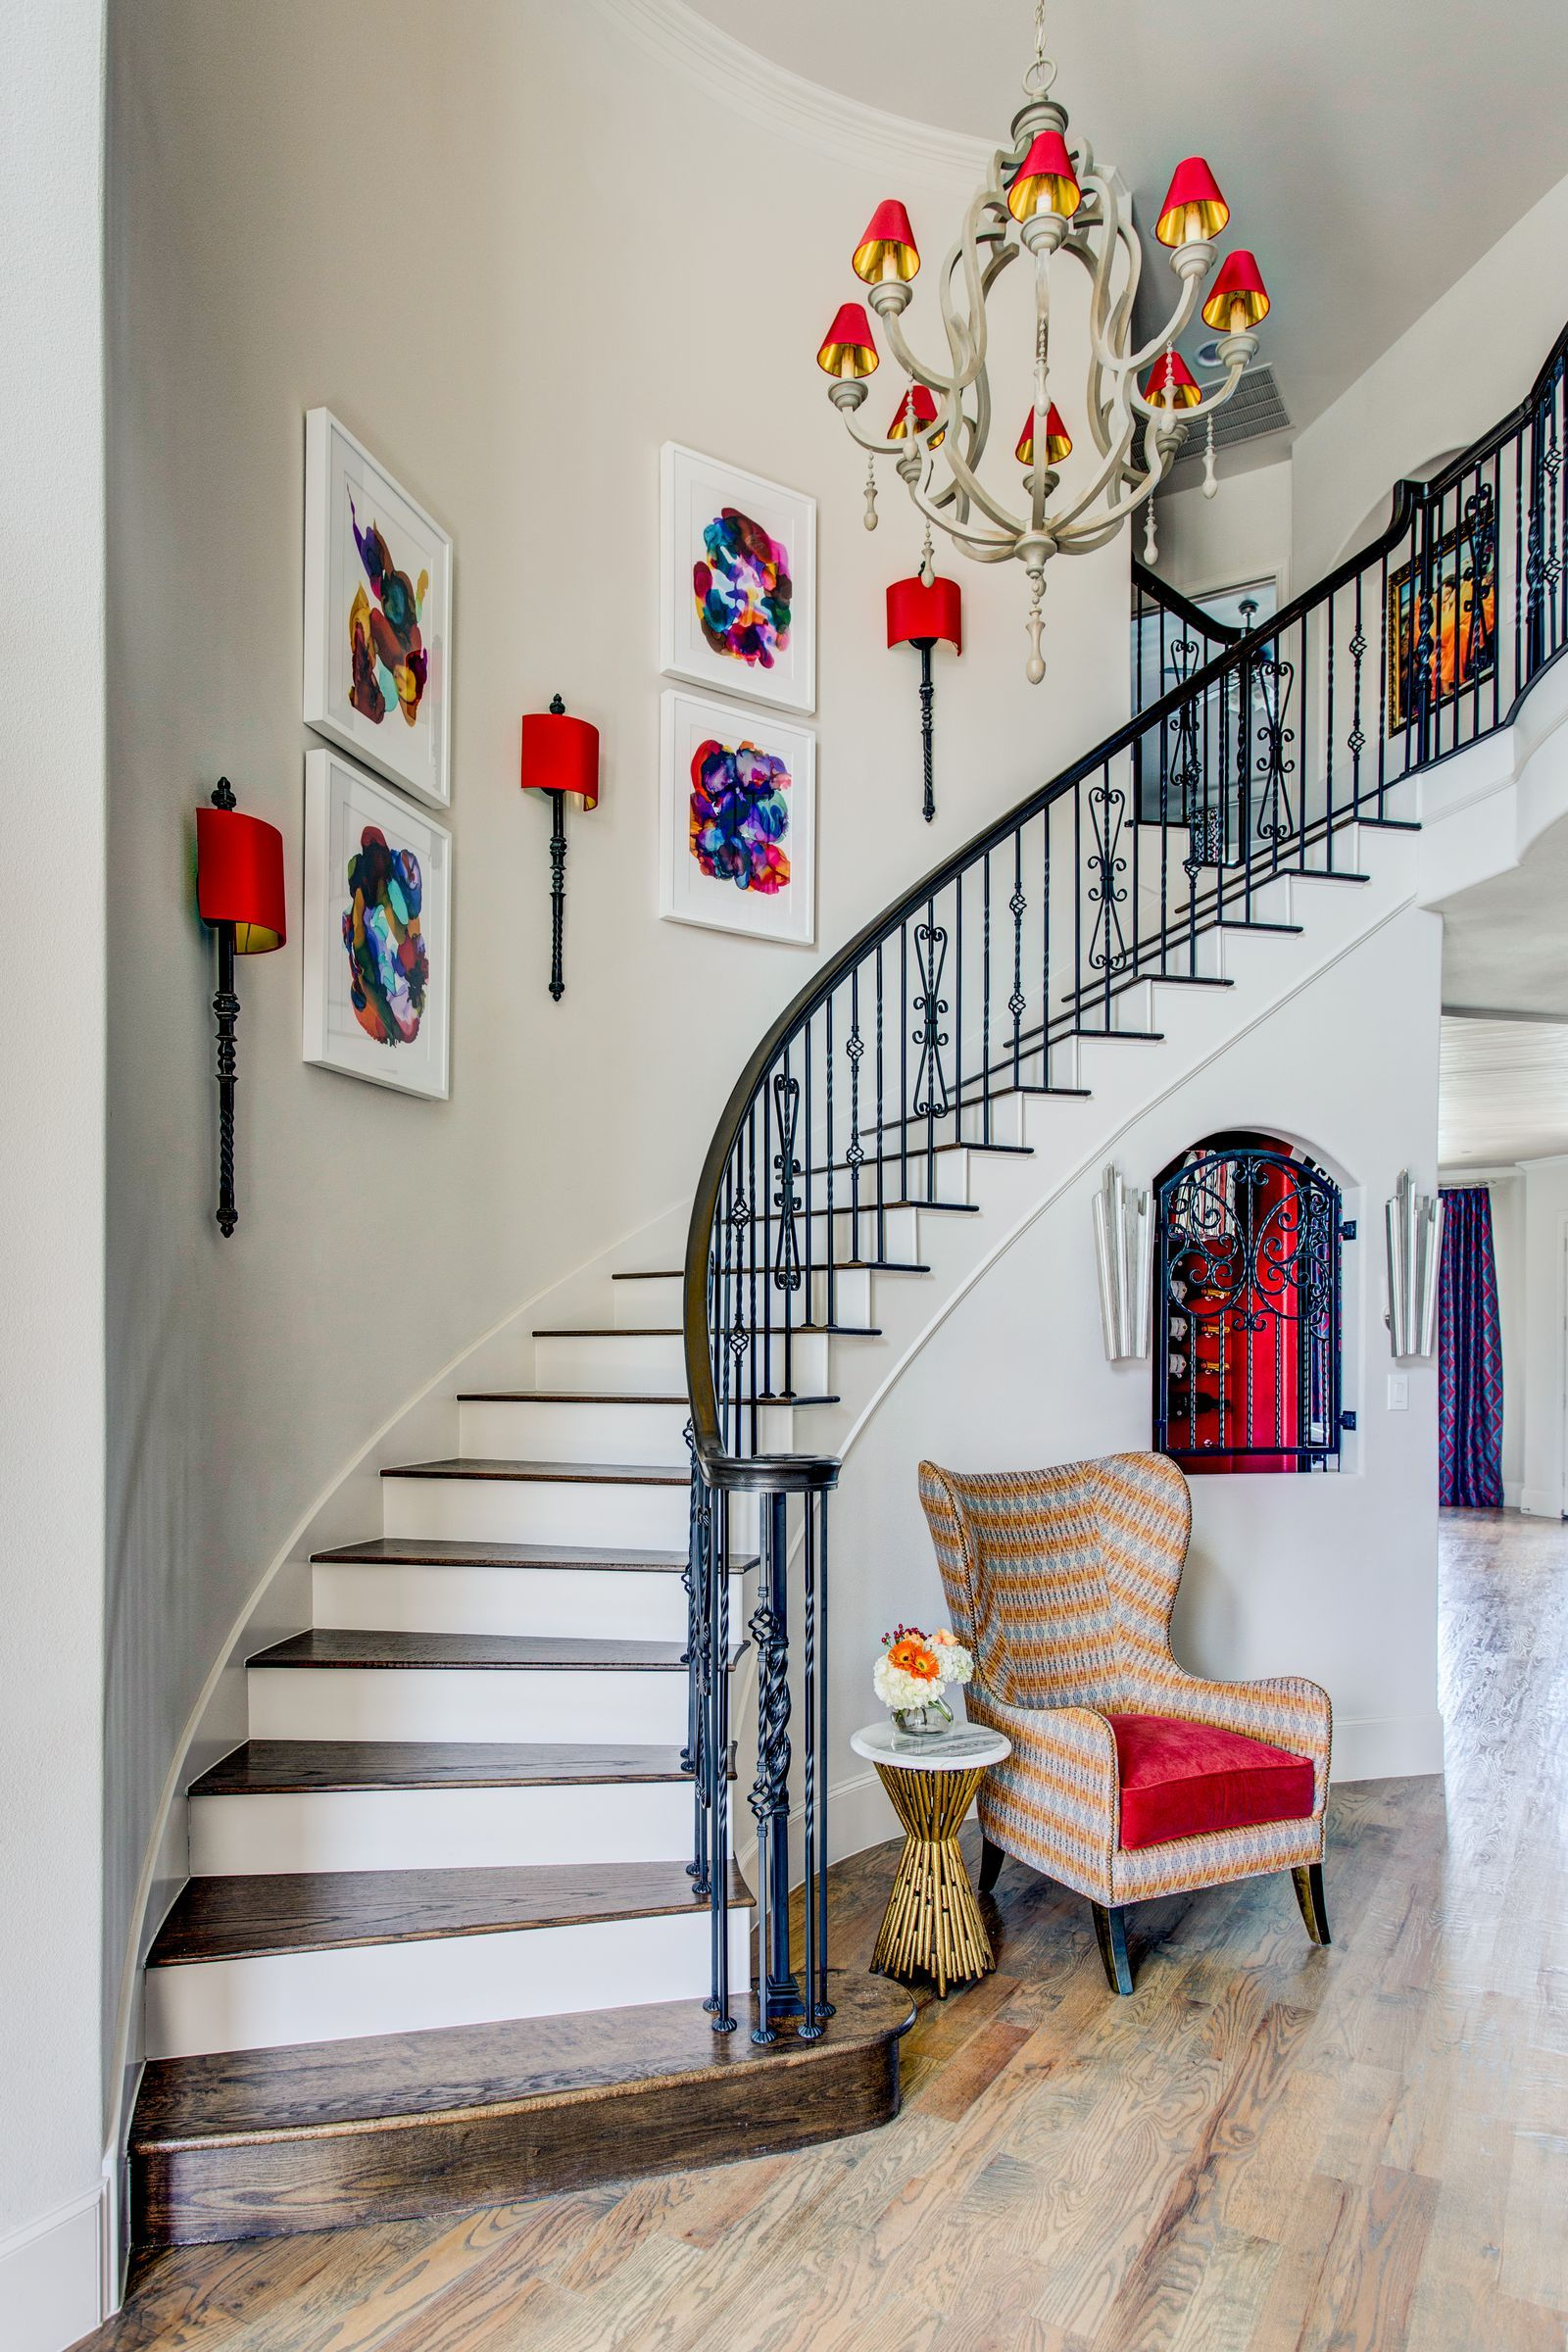 27 stylish staircase decorating ideas stairway on wall art decor id=52964